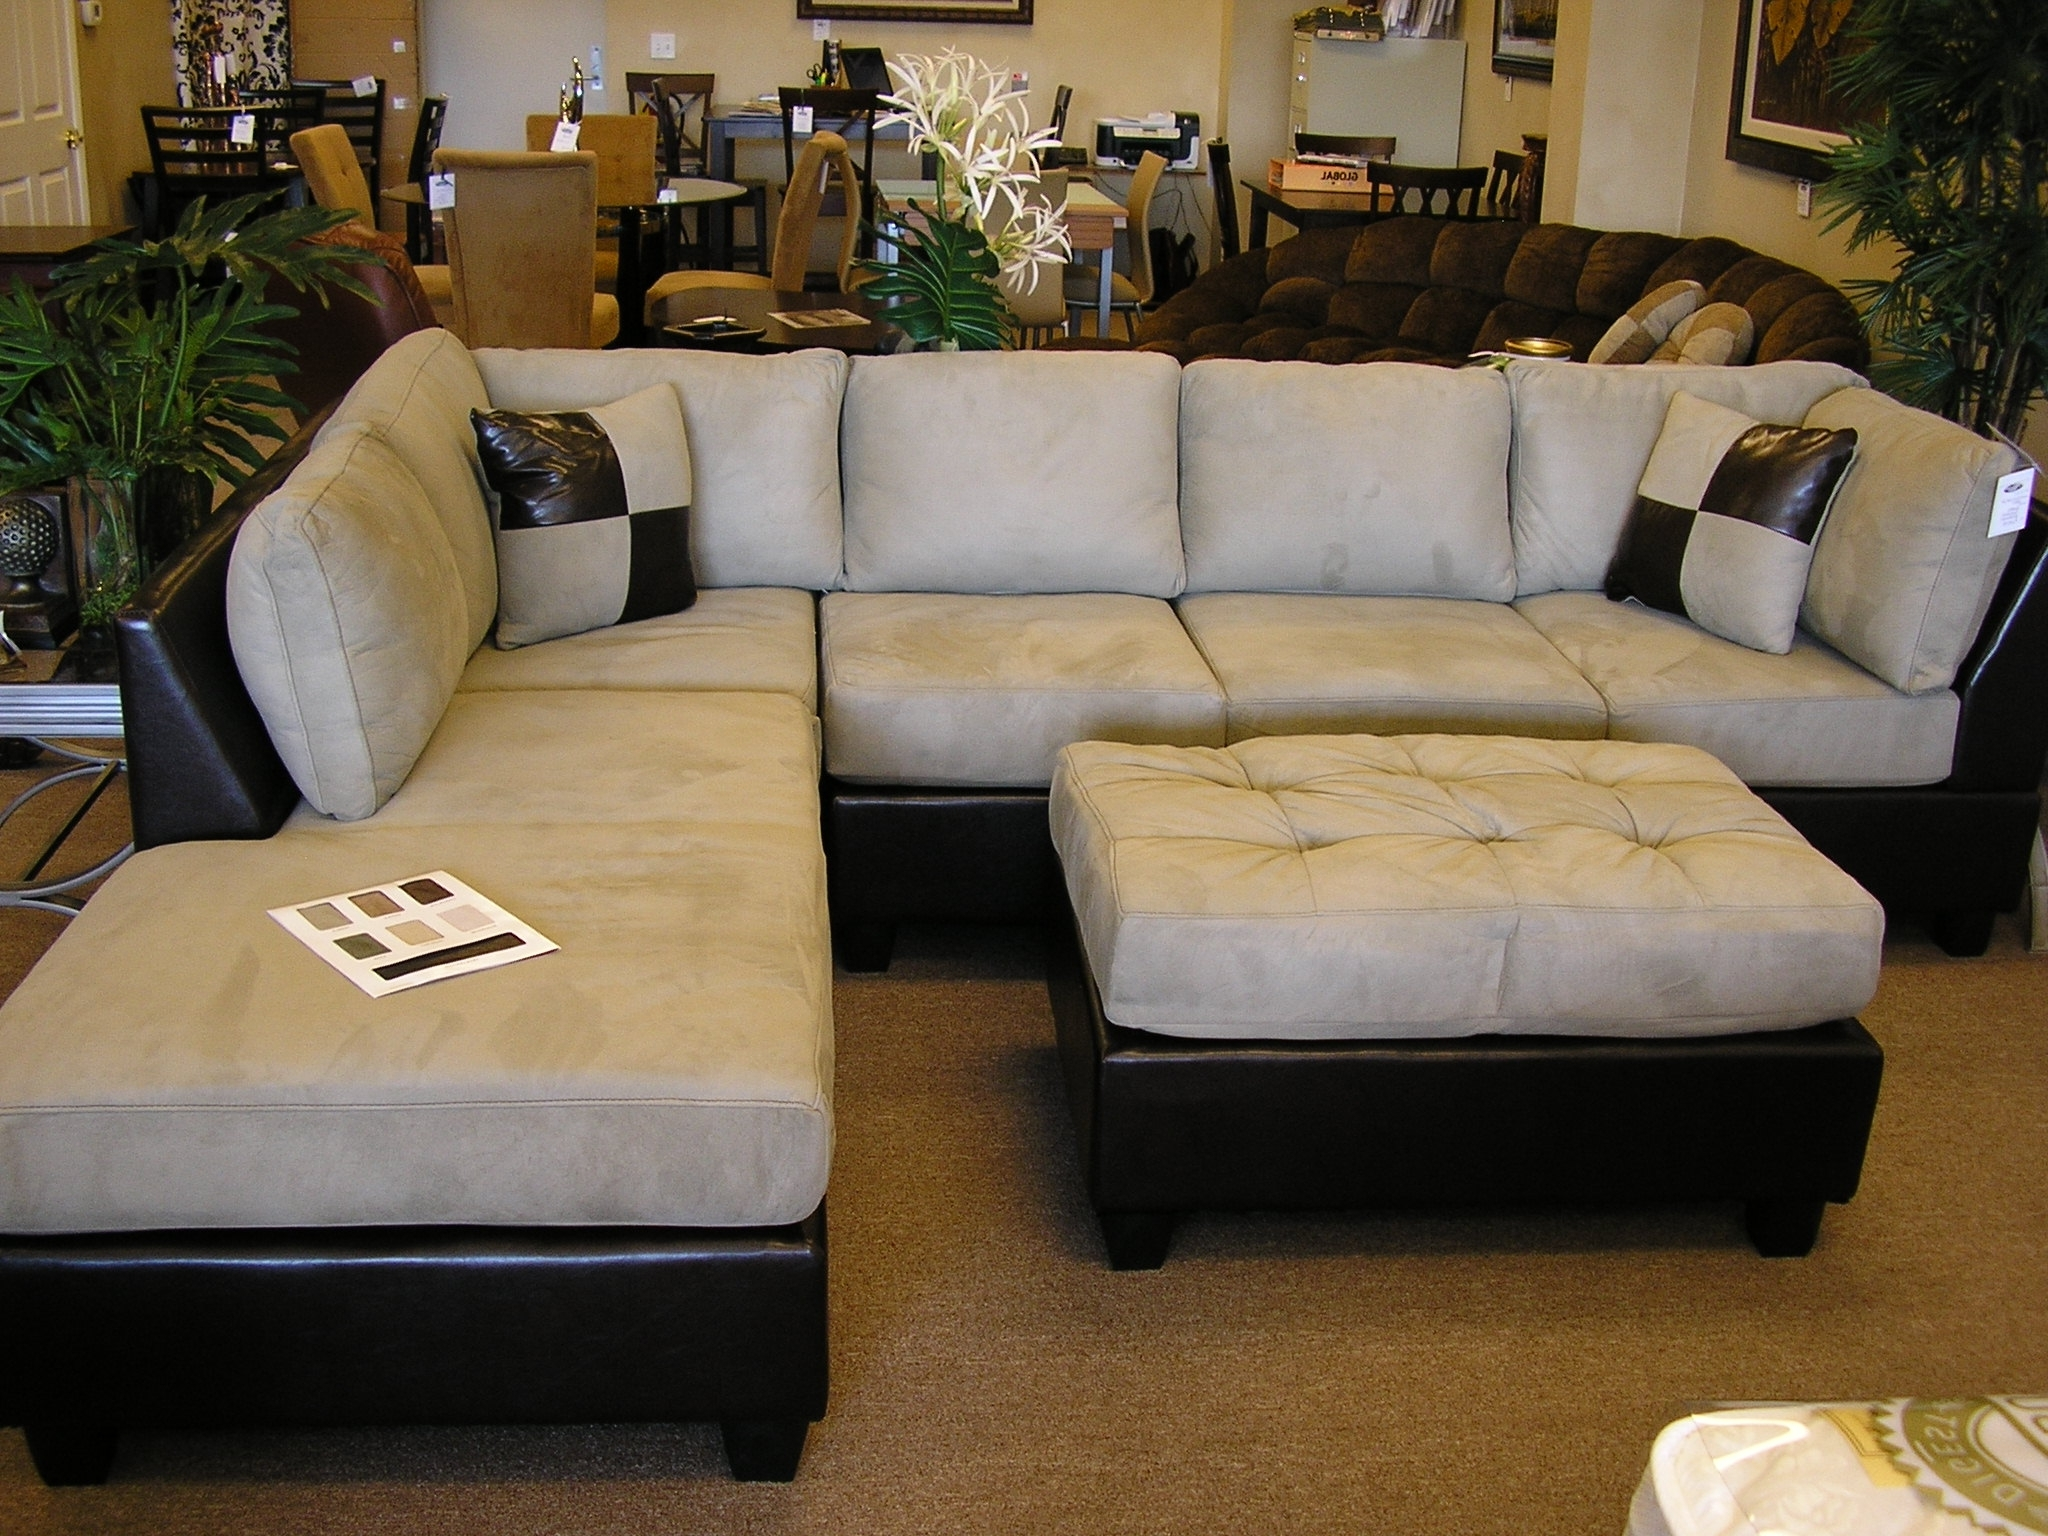 Furniture : Sectional Chaise Lounge Sofa Double Along With With Latest Sofas With Chaise And Ottoman (View 4 of 15)